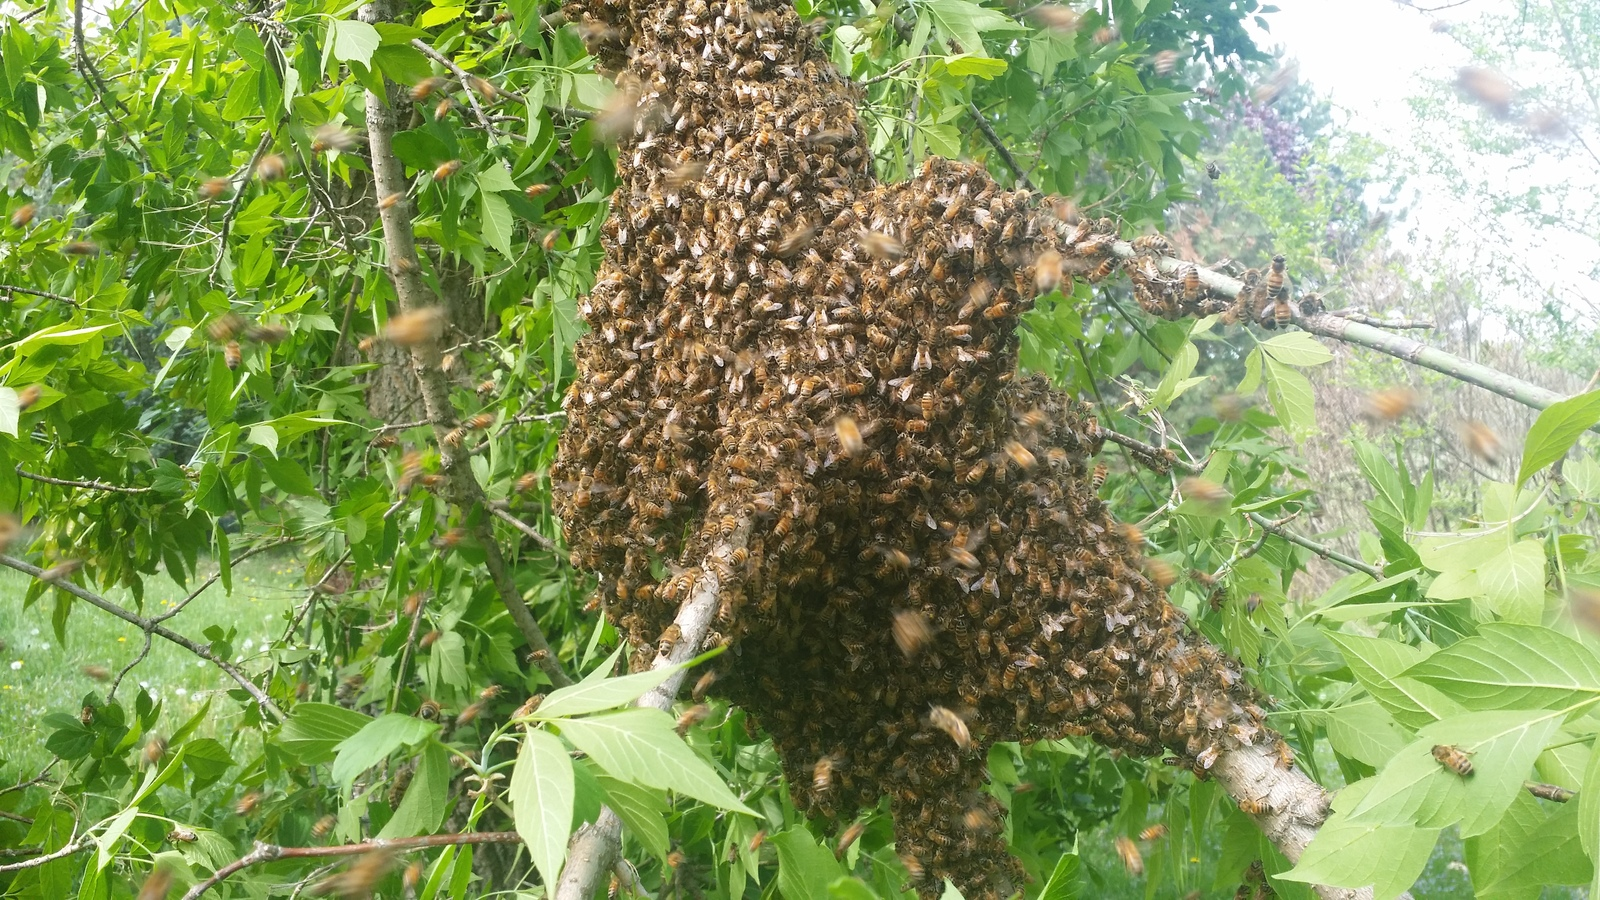 honey bee swarm | by Sir Charles Buckingham the First